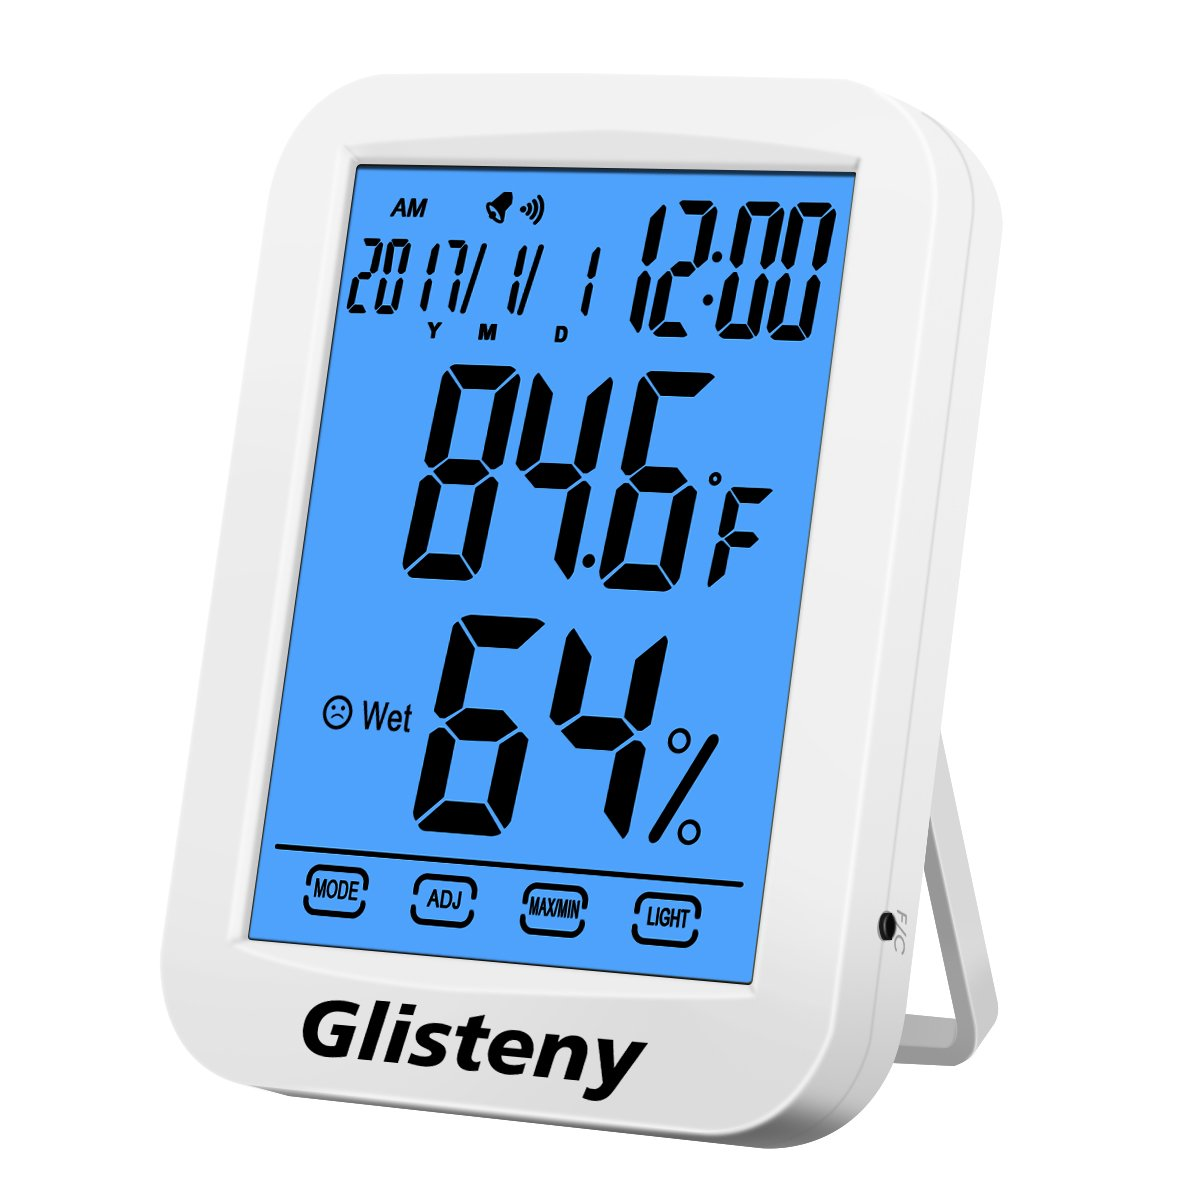 Glisteny Temperature Hygrometer, Indoor Digital Hygrometer, Outdoor Humidity Thermometer Monitor, Smart Touchscreen Light Built-in Clock Timer Digital Temperature Hygrometer Glisteny Co. Ltd